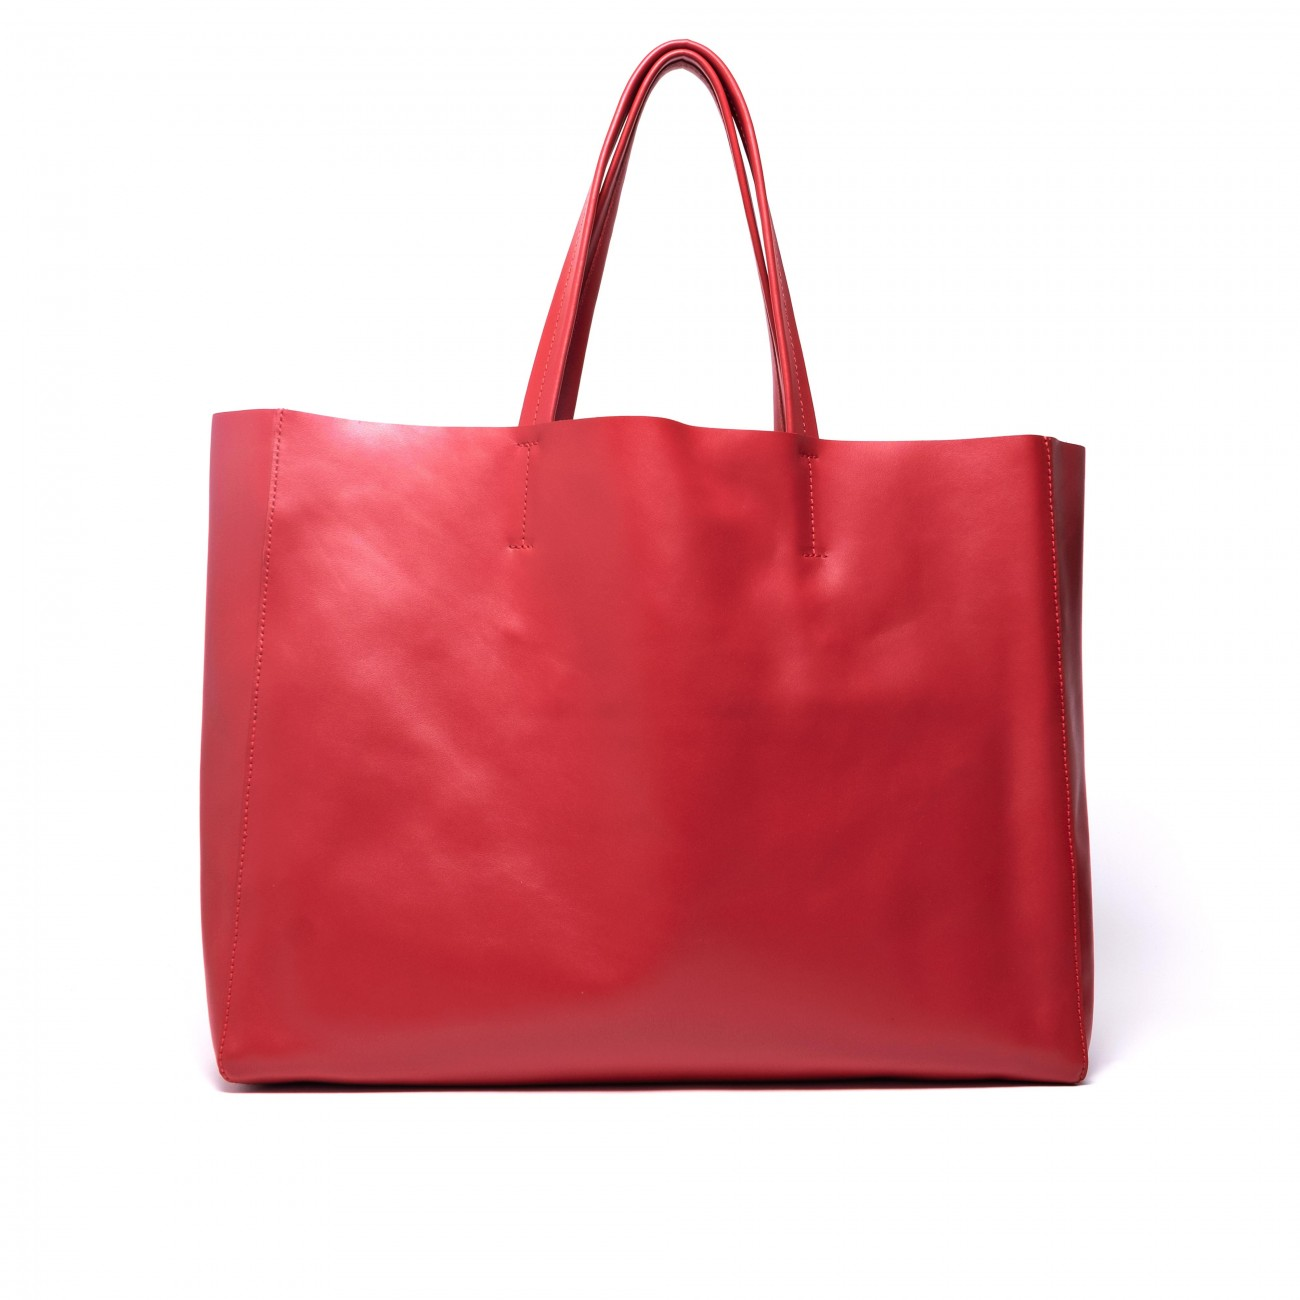 Brigit bag red cherry